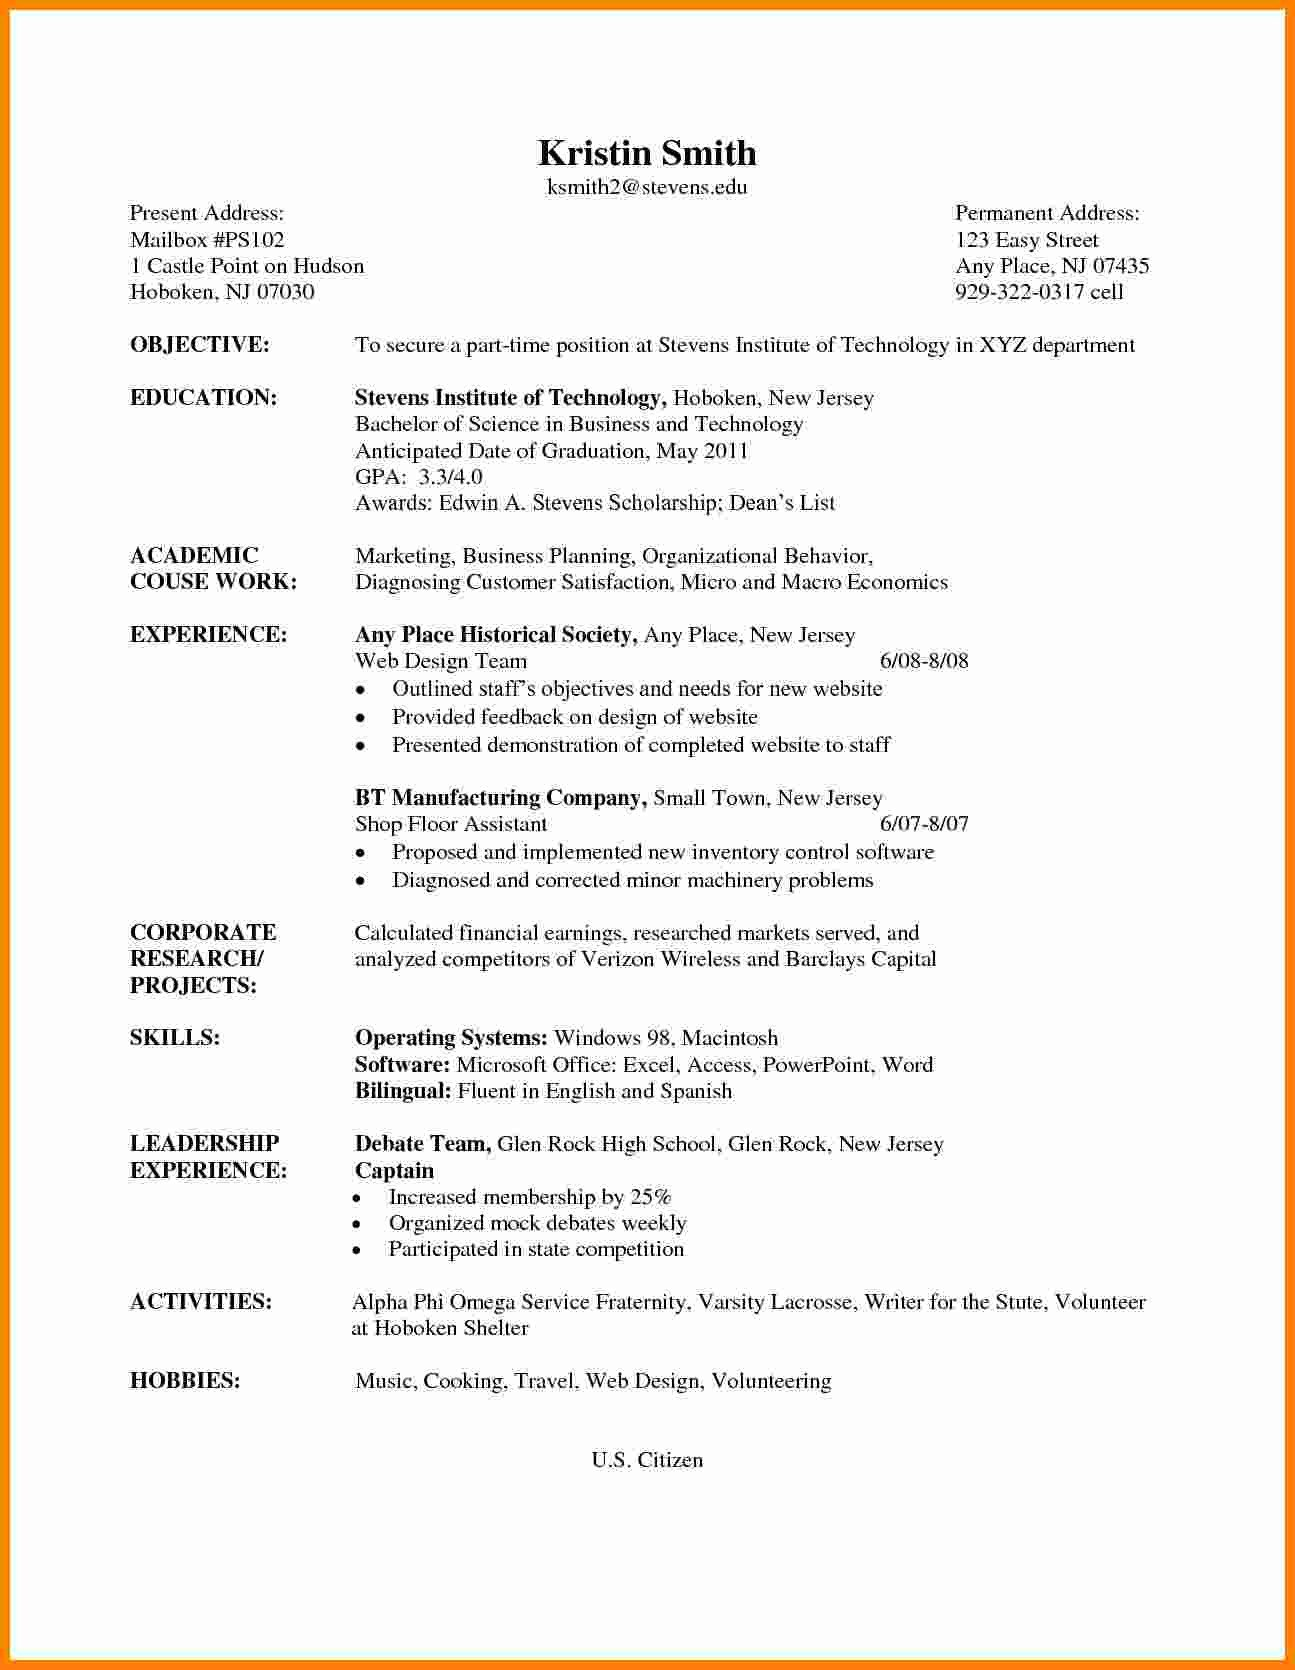 Curriculum Vitae Template Student 5 Cv Samples for Undergraduate Students